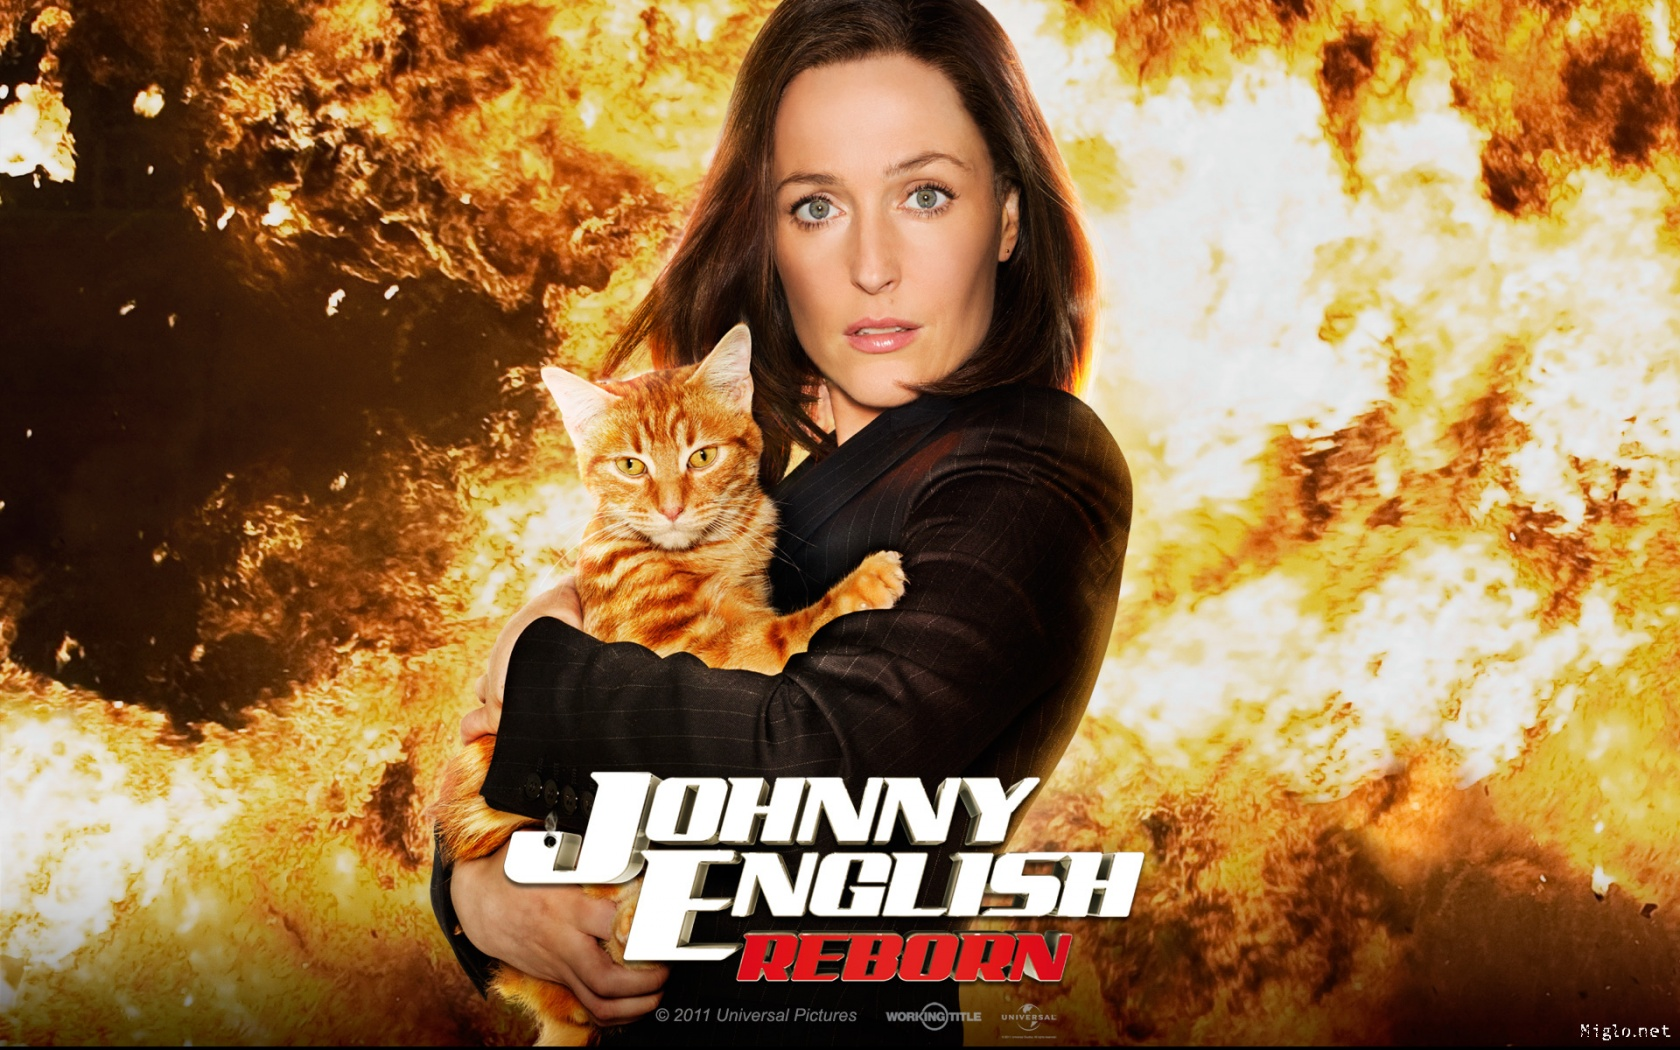 REPRISE DES NEGOCIATIONS johnny-english